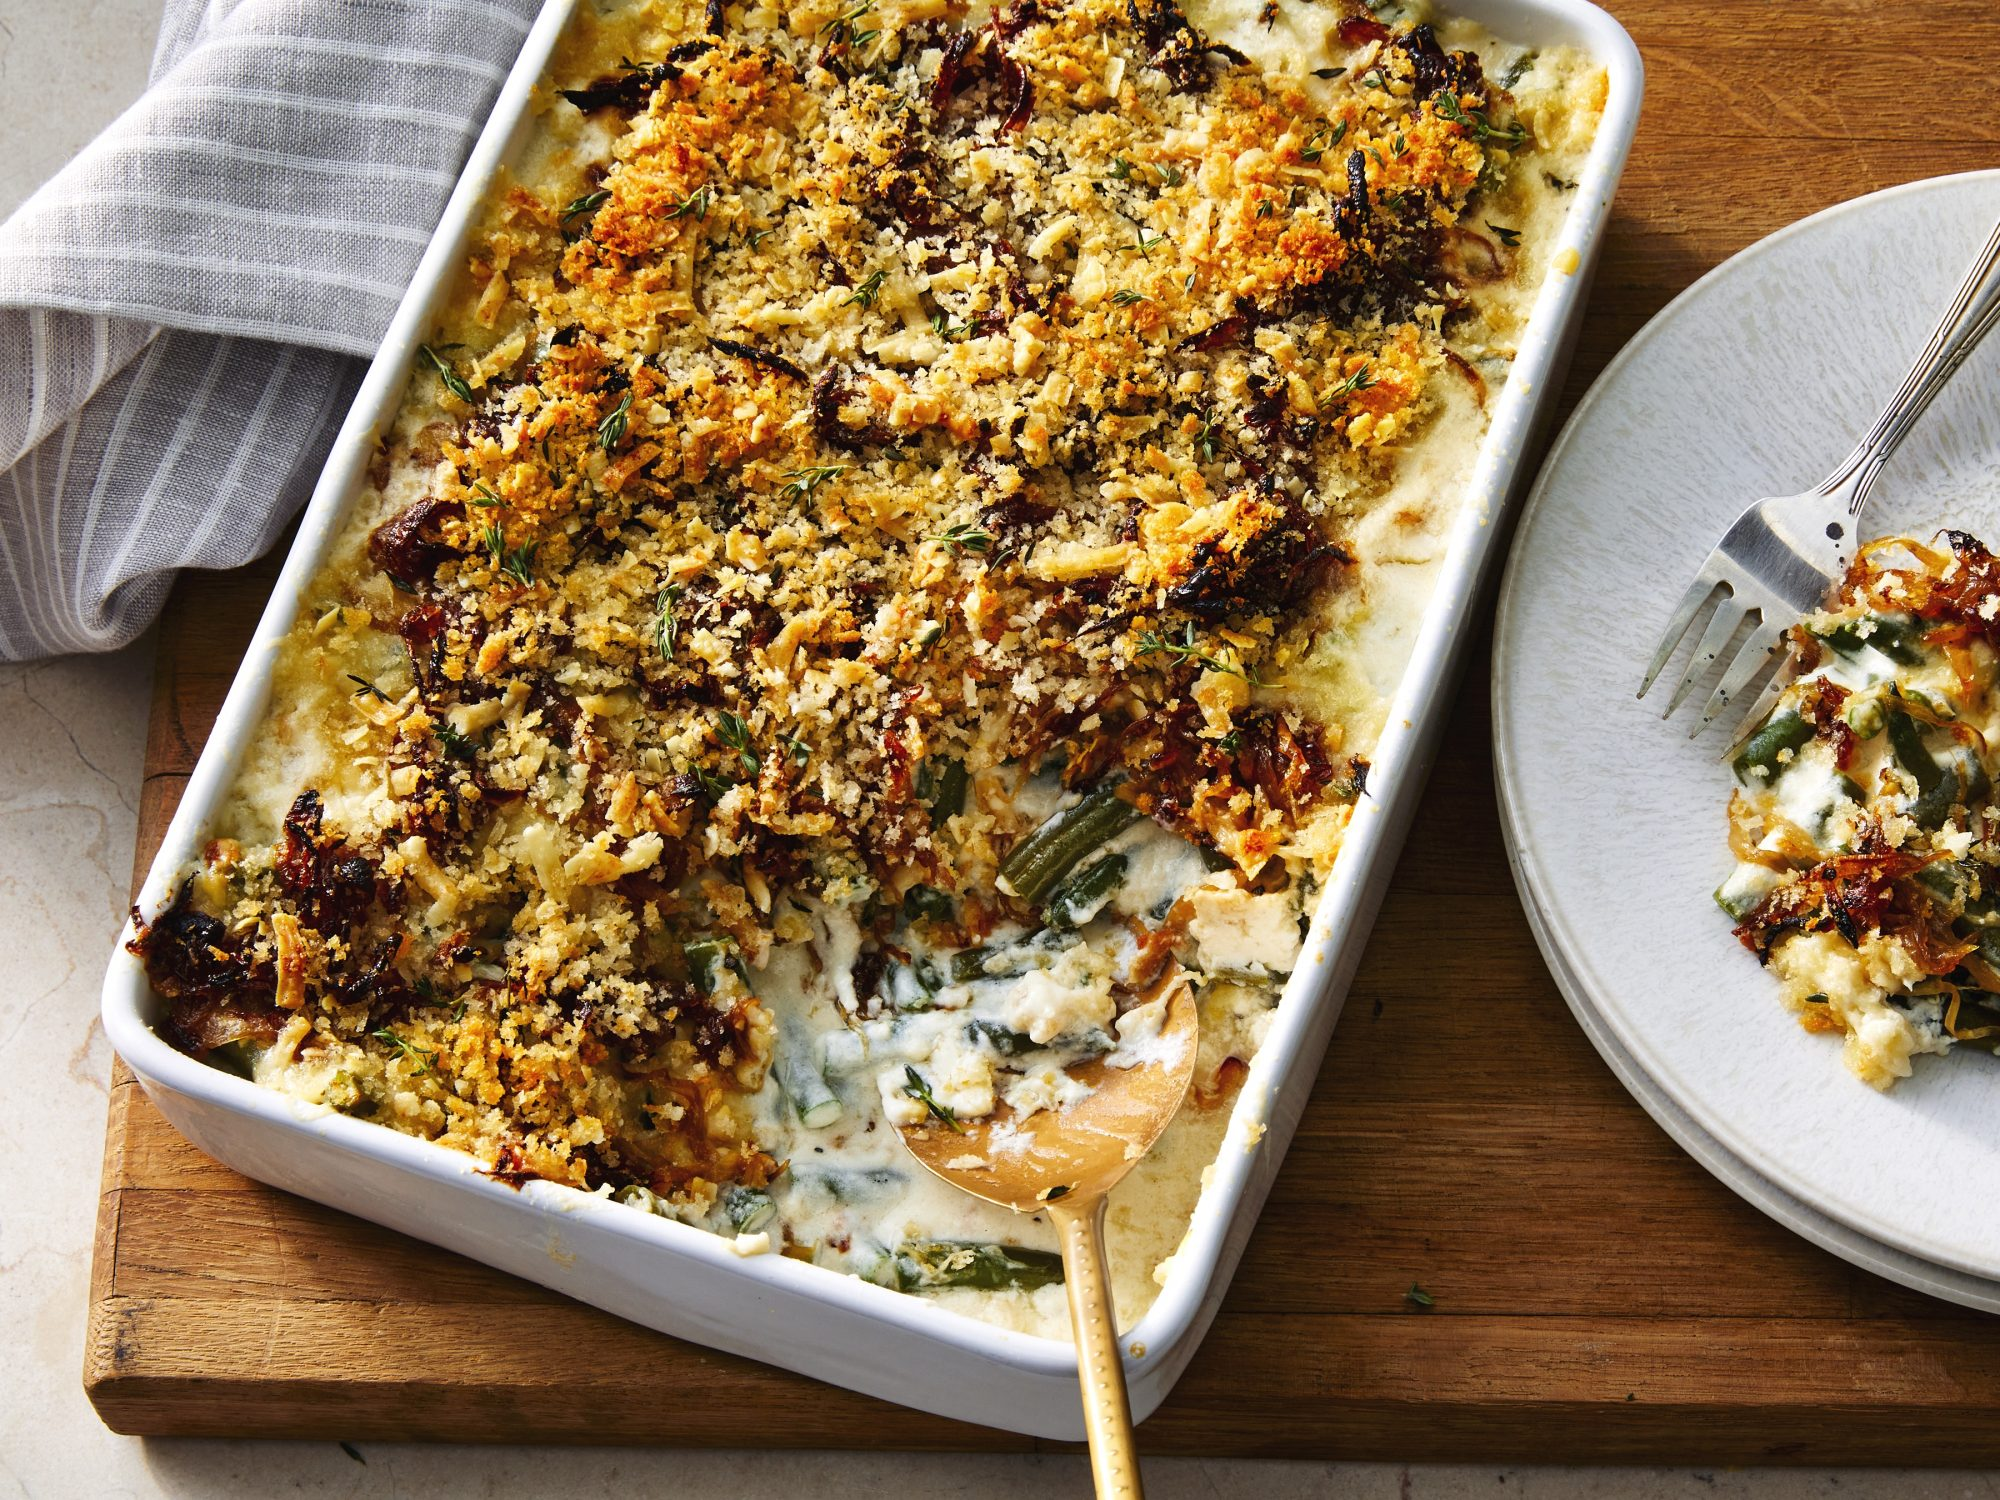 mr - French Onion Green Bean Casserole Image